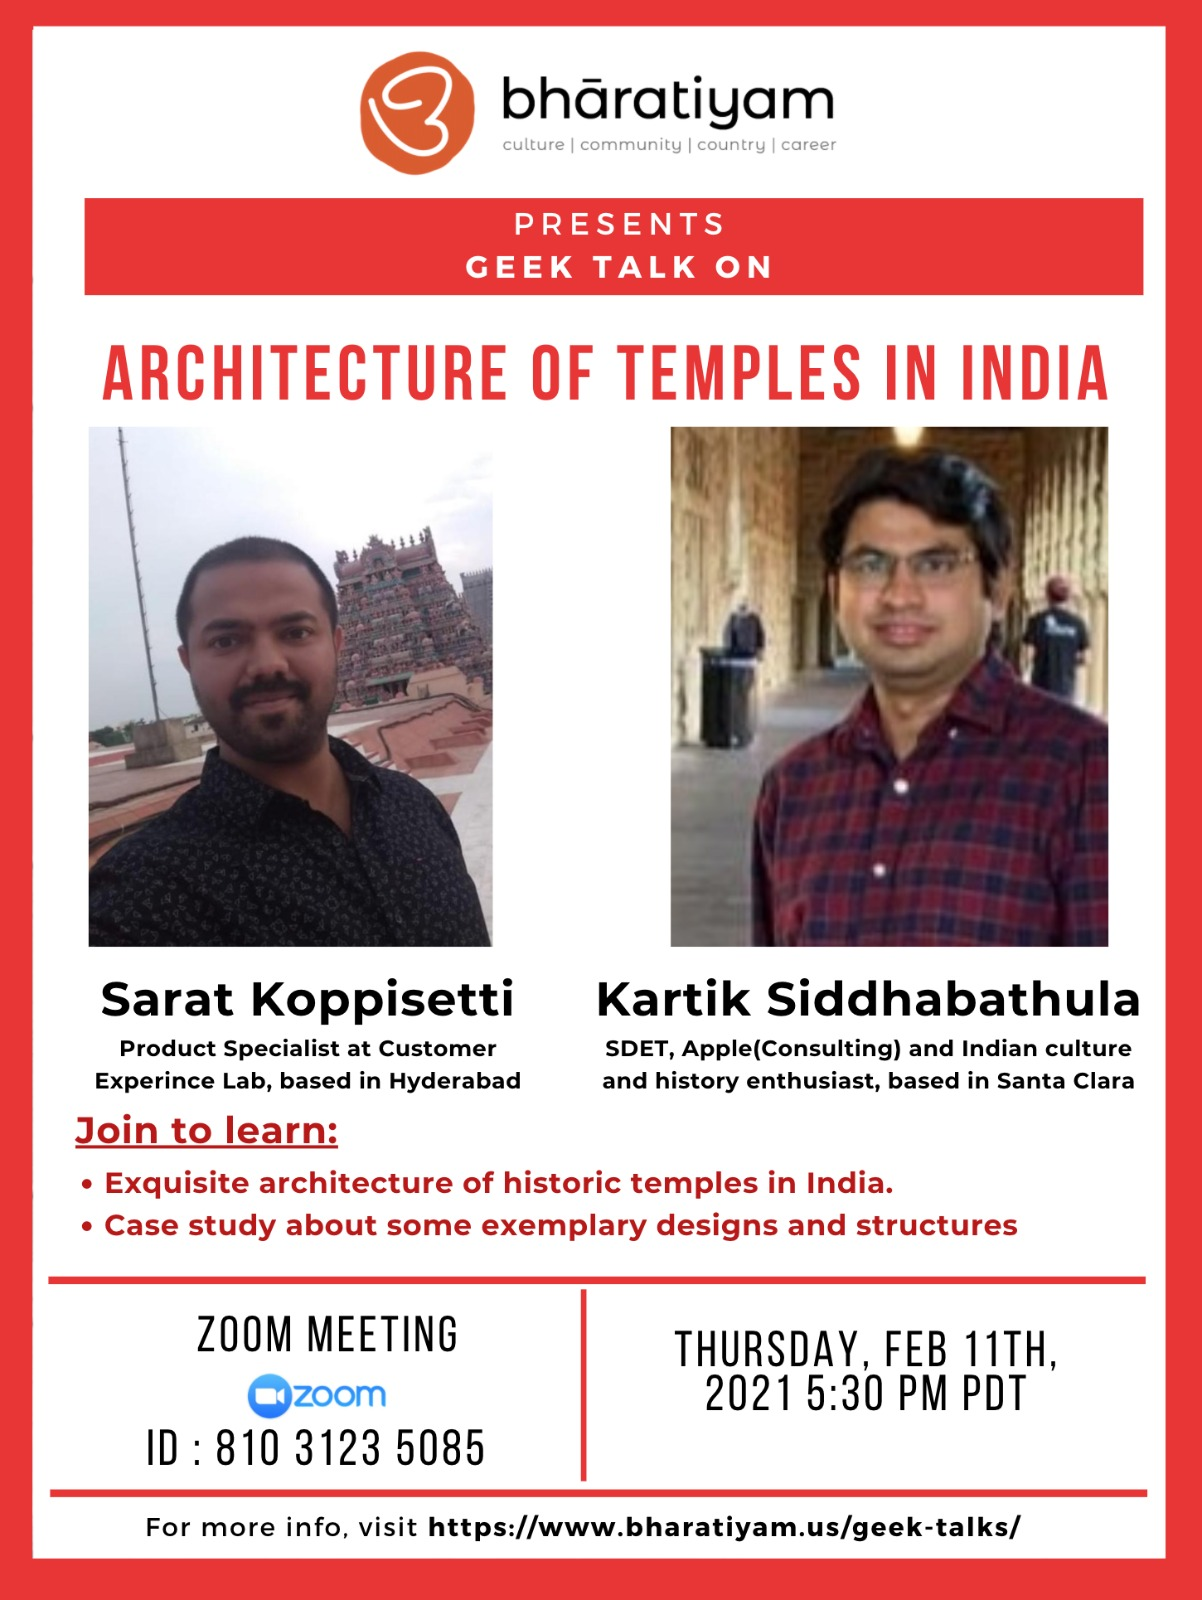 Architecture of temples in India